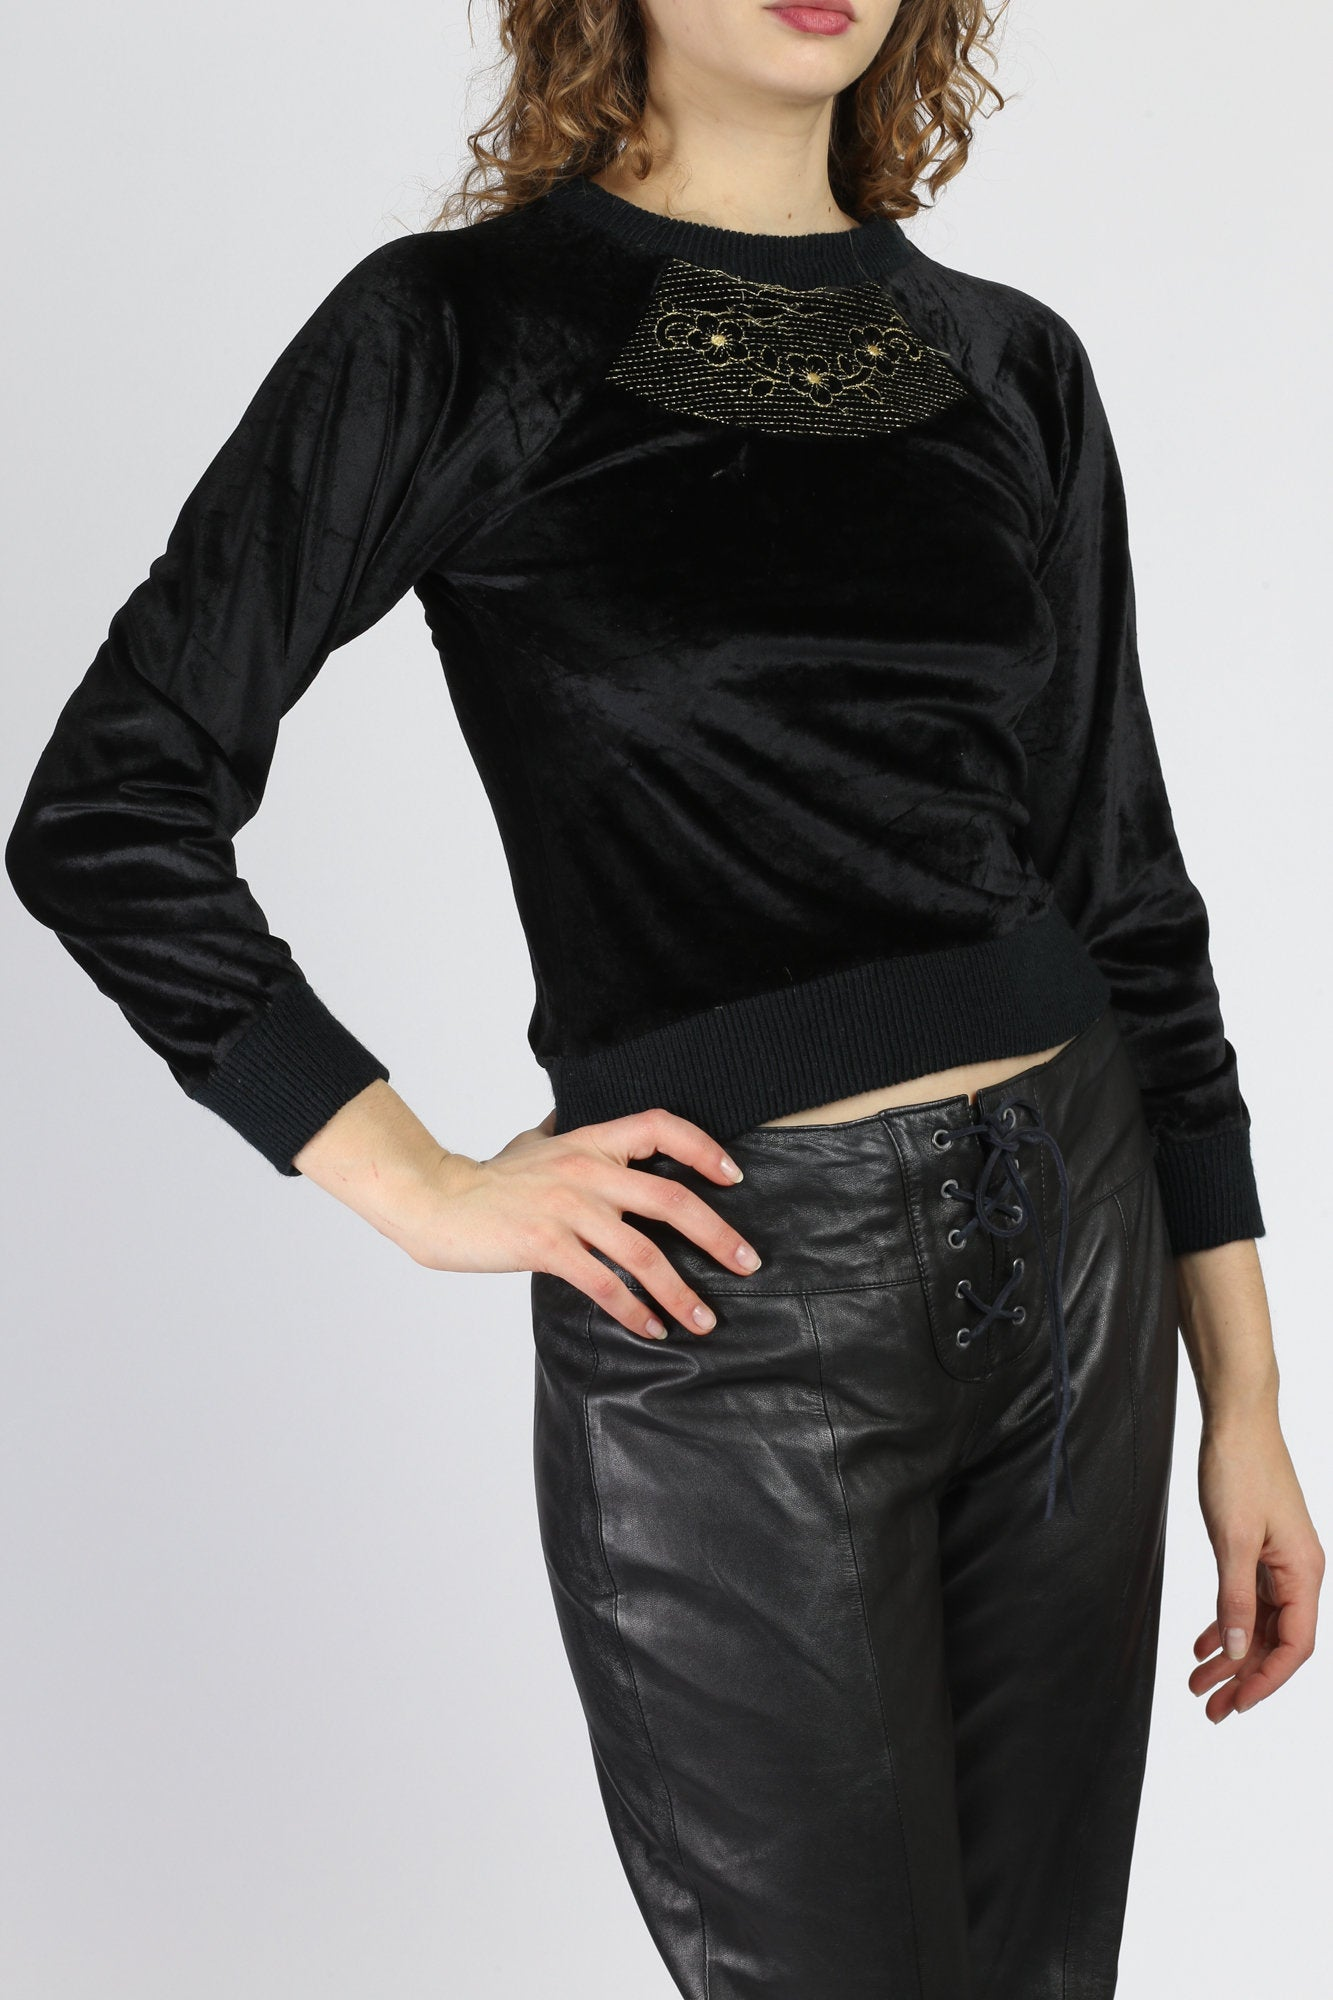 Vintage Black Velvet Crop Top - Petite Small